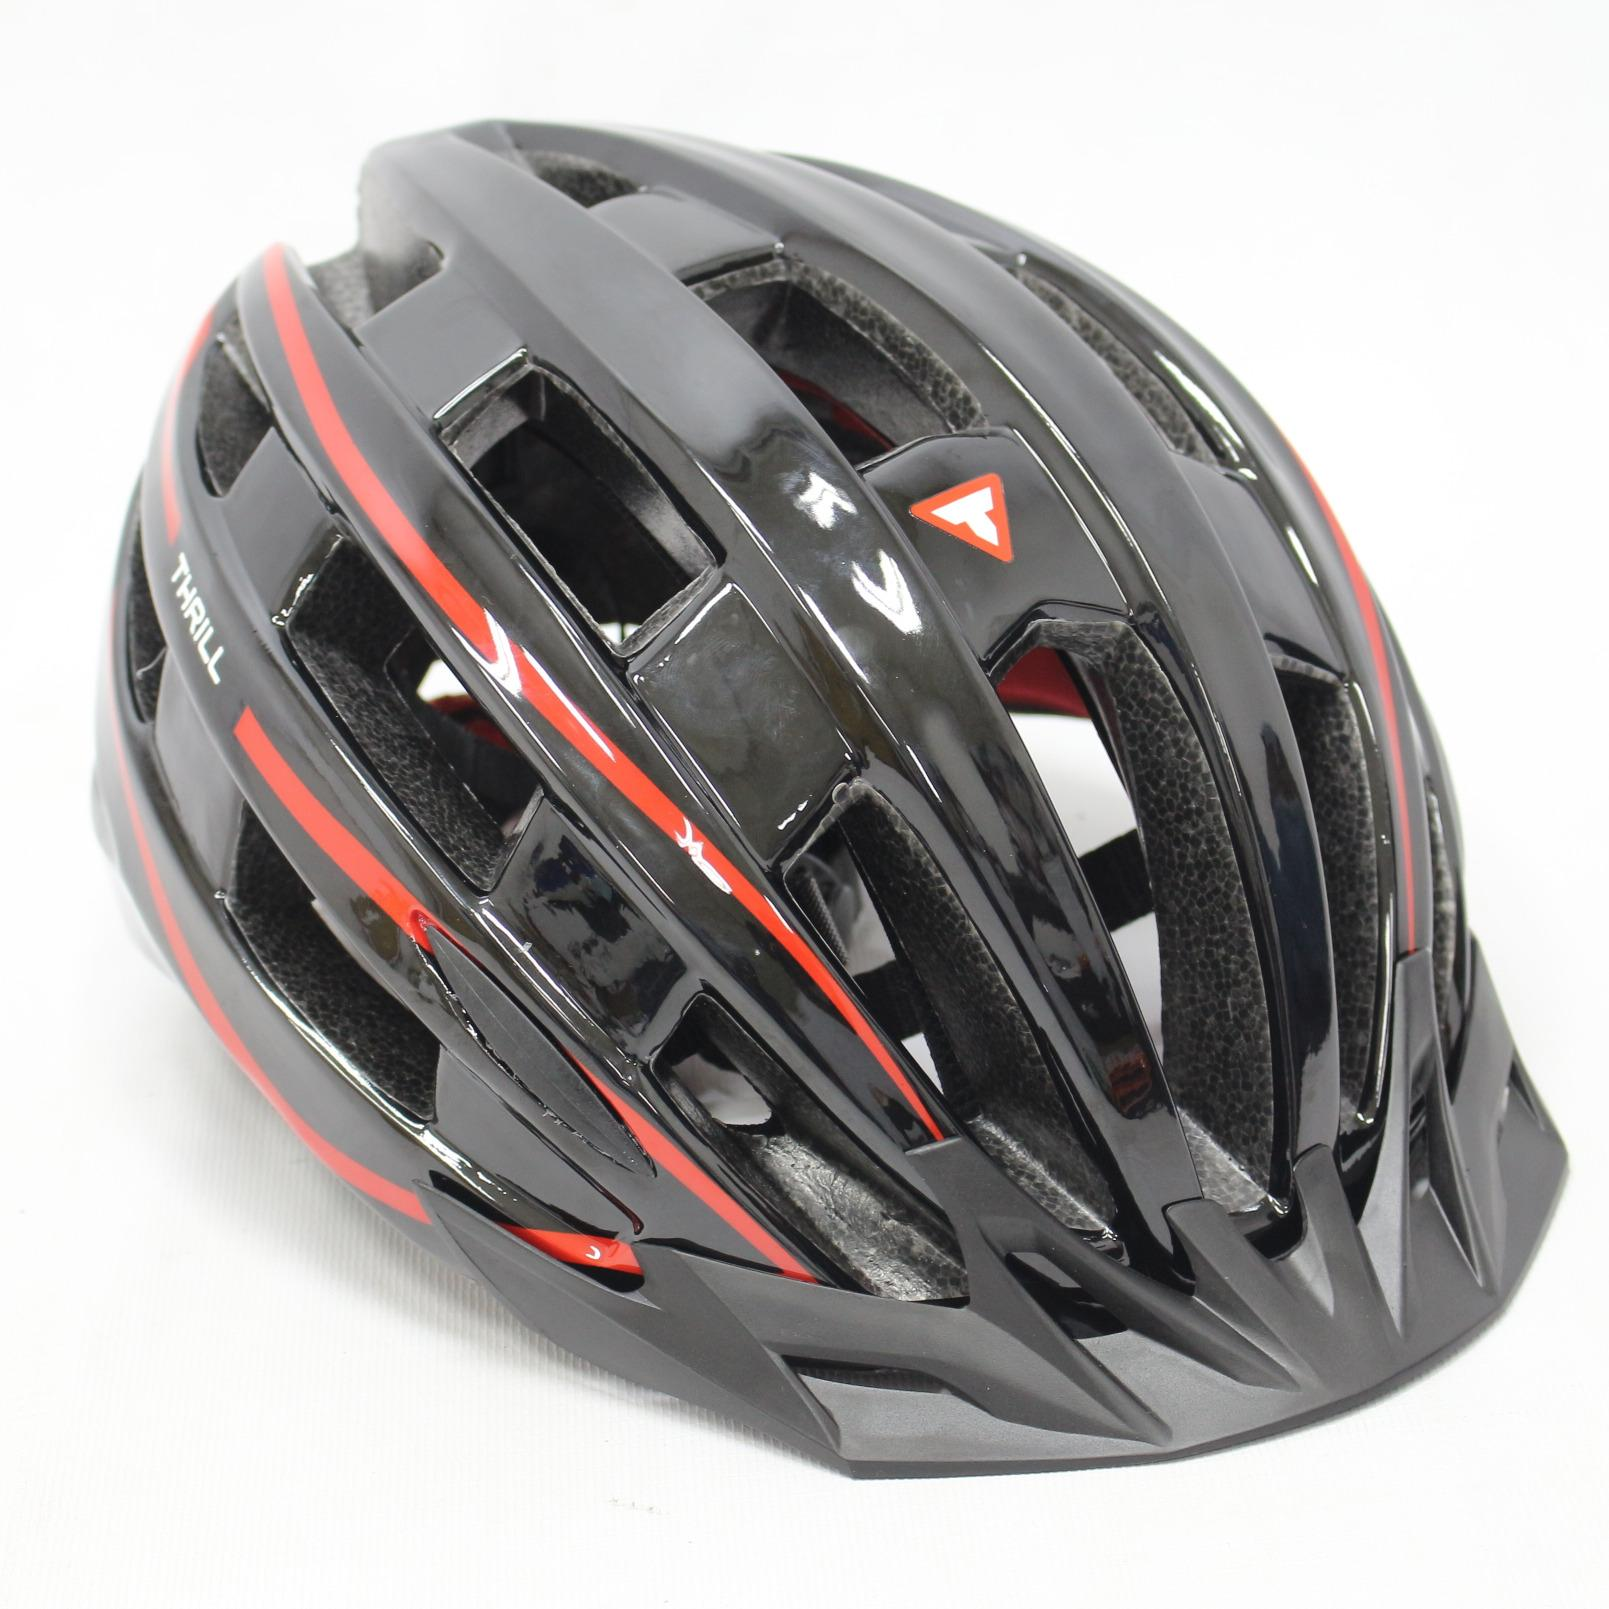 HELM SEPEDA MTB THRILL SPACE BLK RED